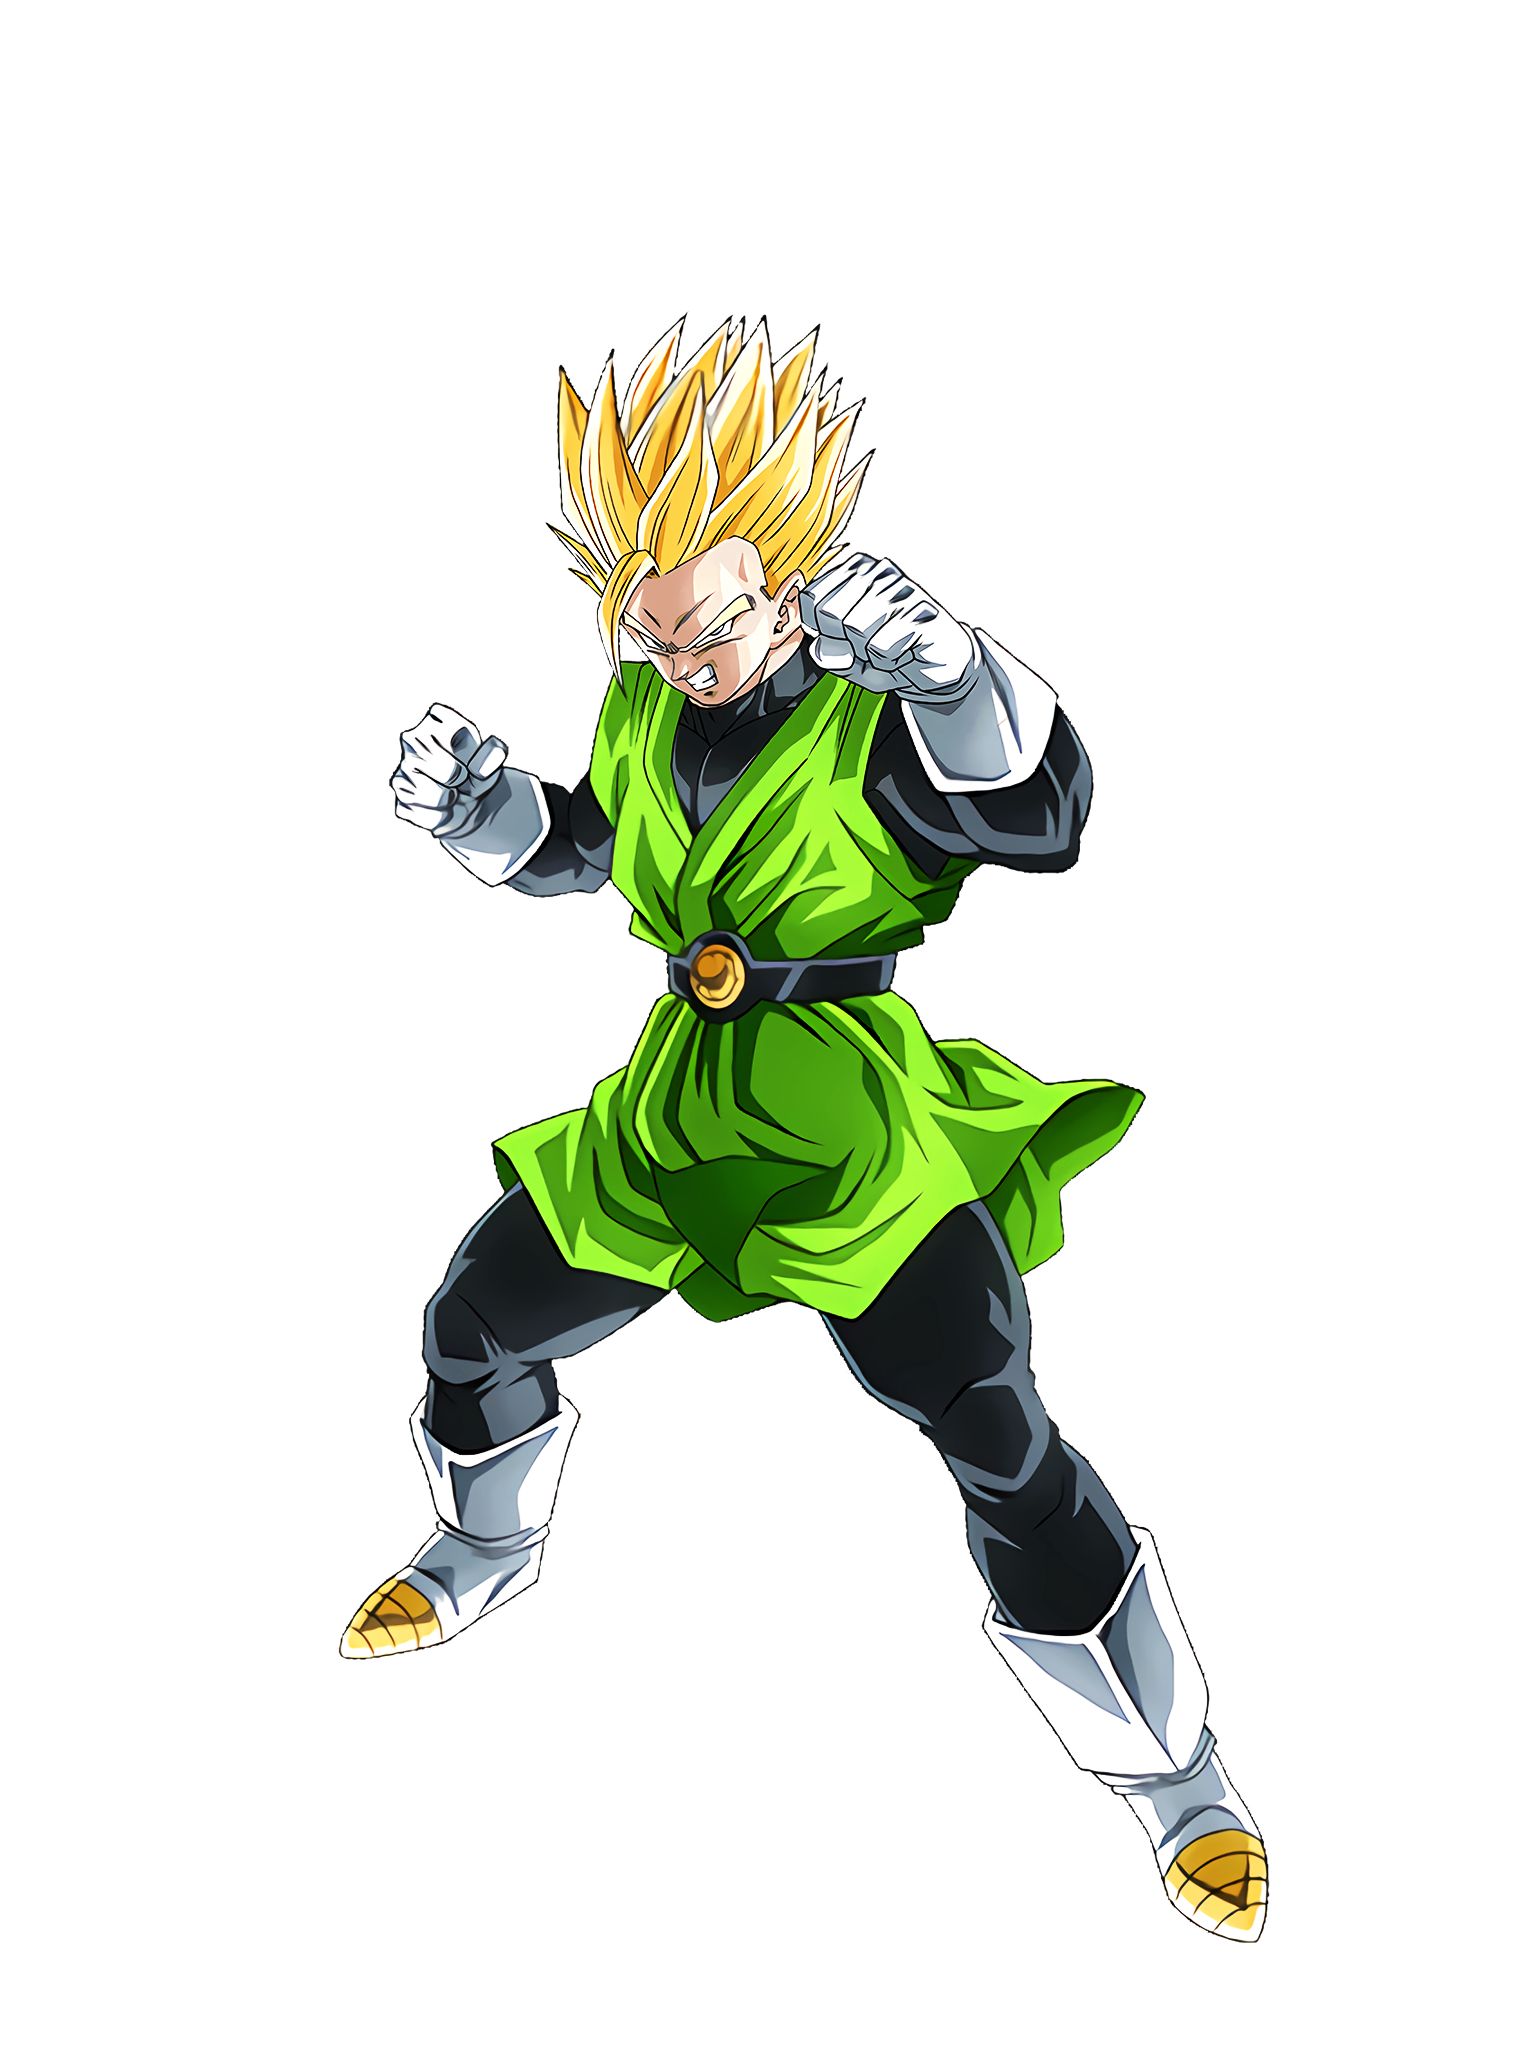 Shining-Gold Justice Great Saiyaman SS2 Render (Dragon Ball Z Dokkan Battle) .png